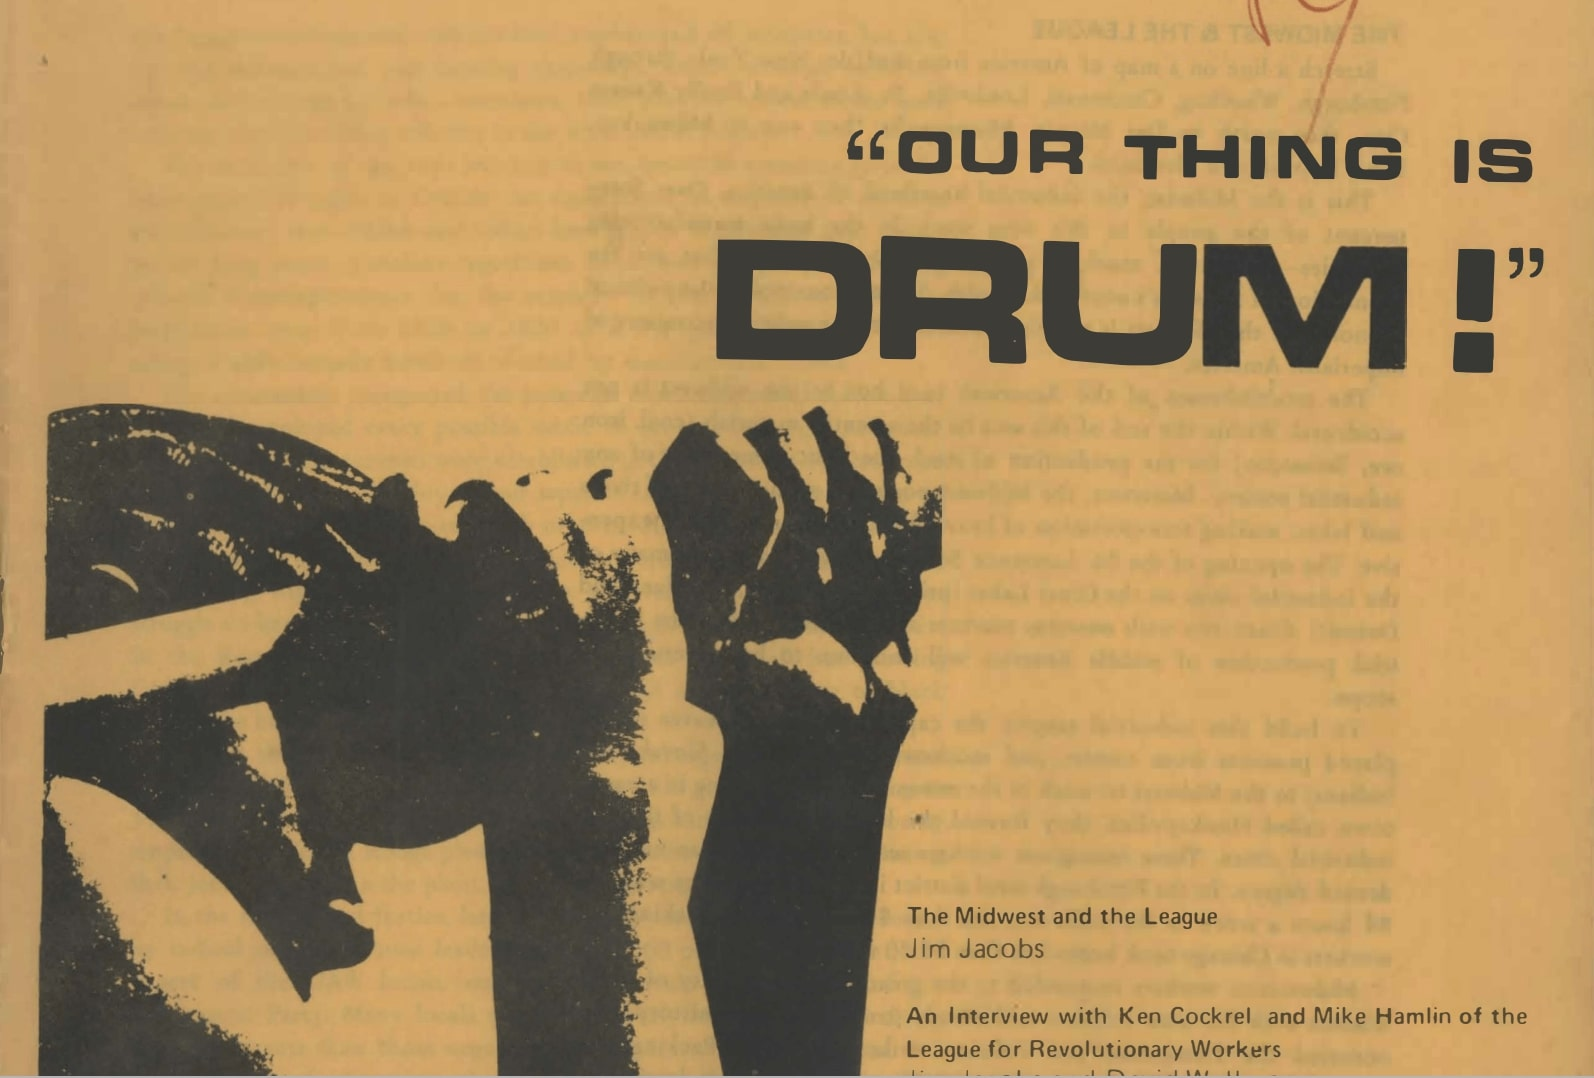 Our Thing Is DRUM!